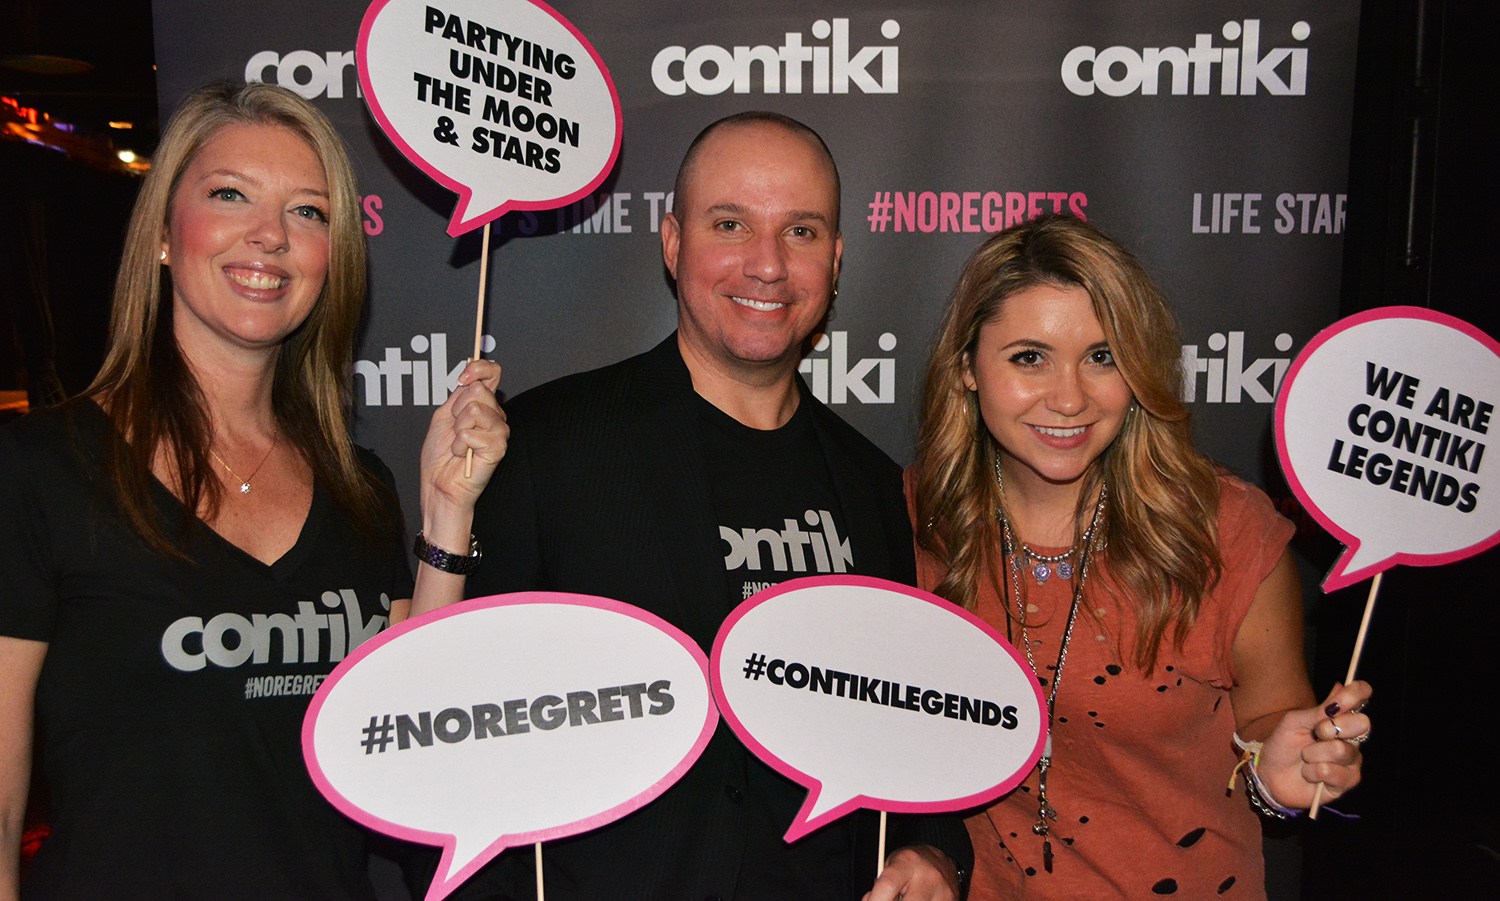 Contiki officially launches new campaign, new trip styles